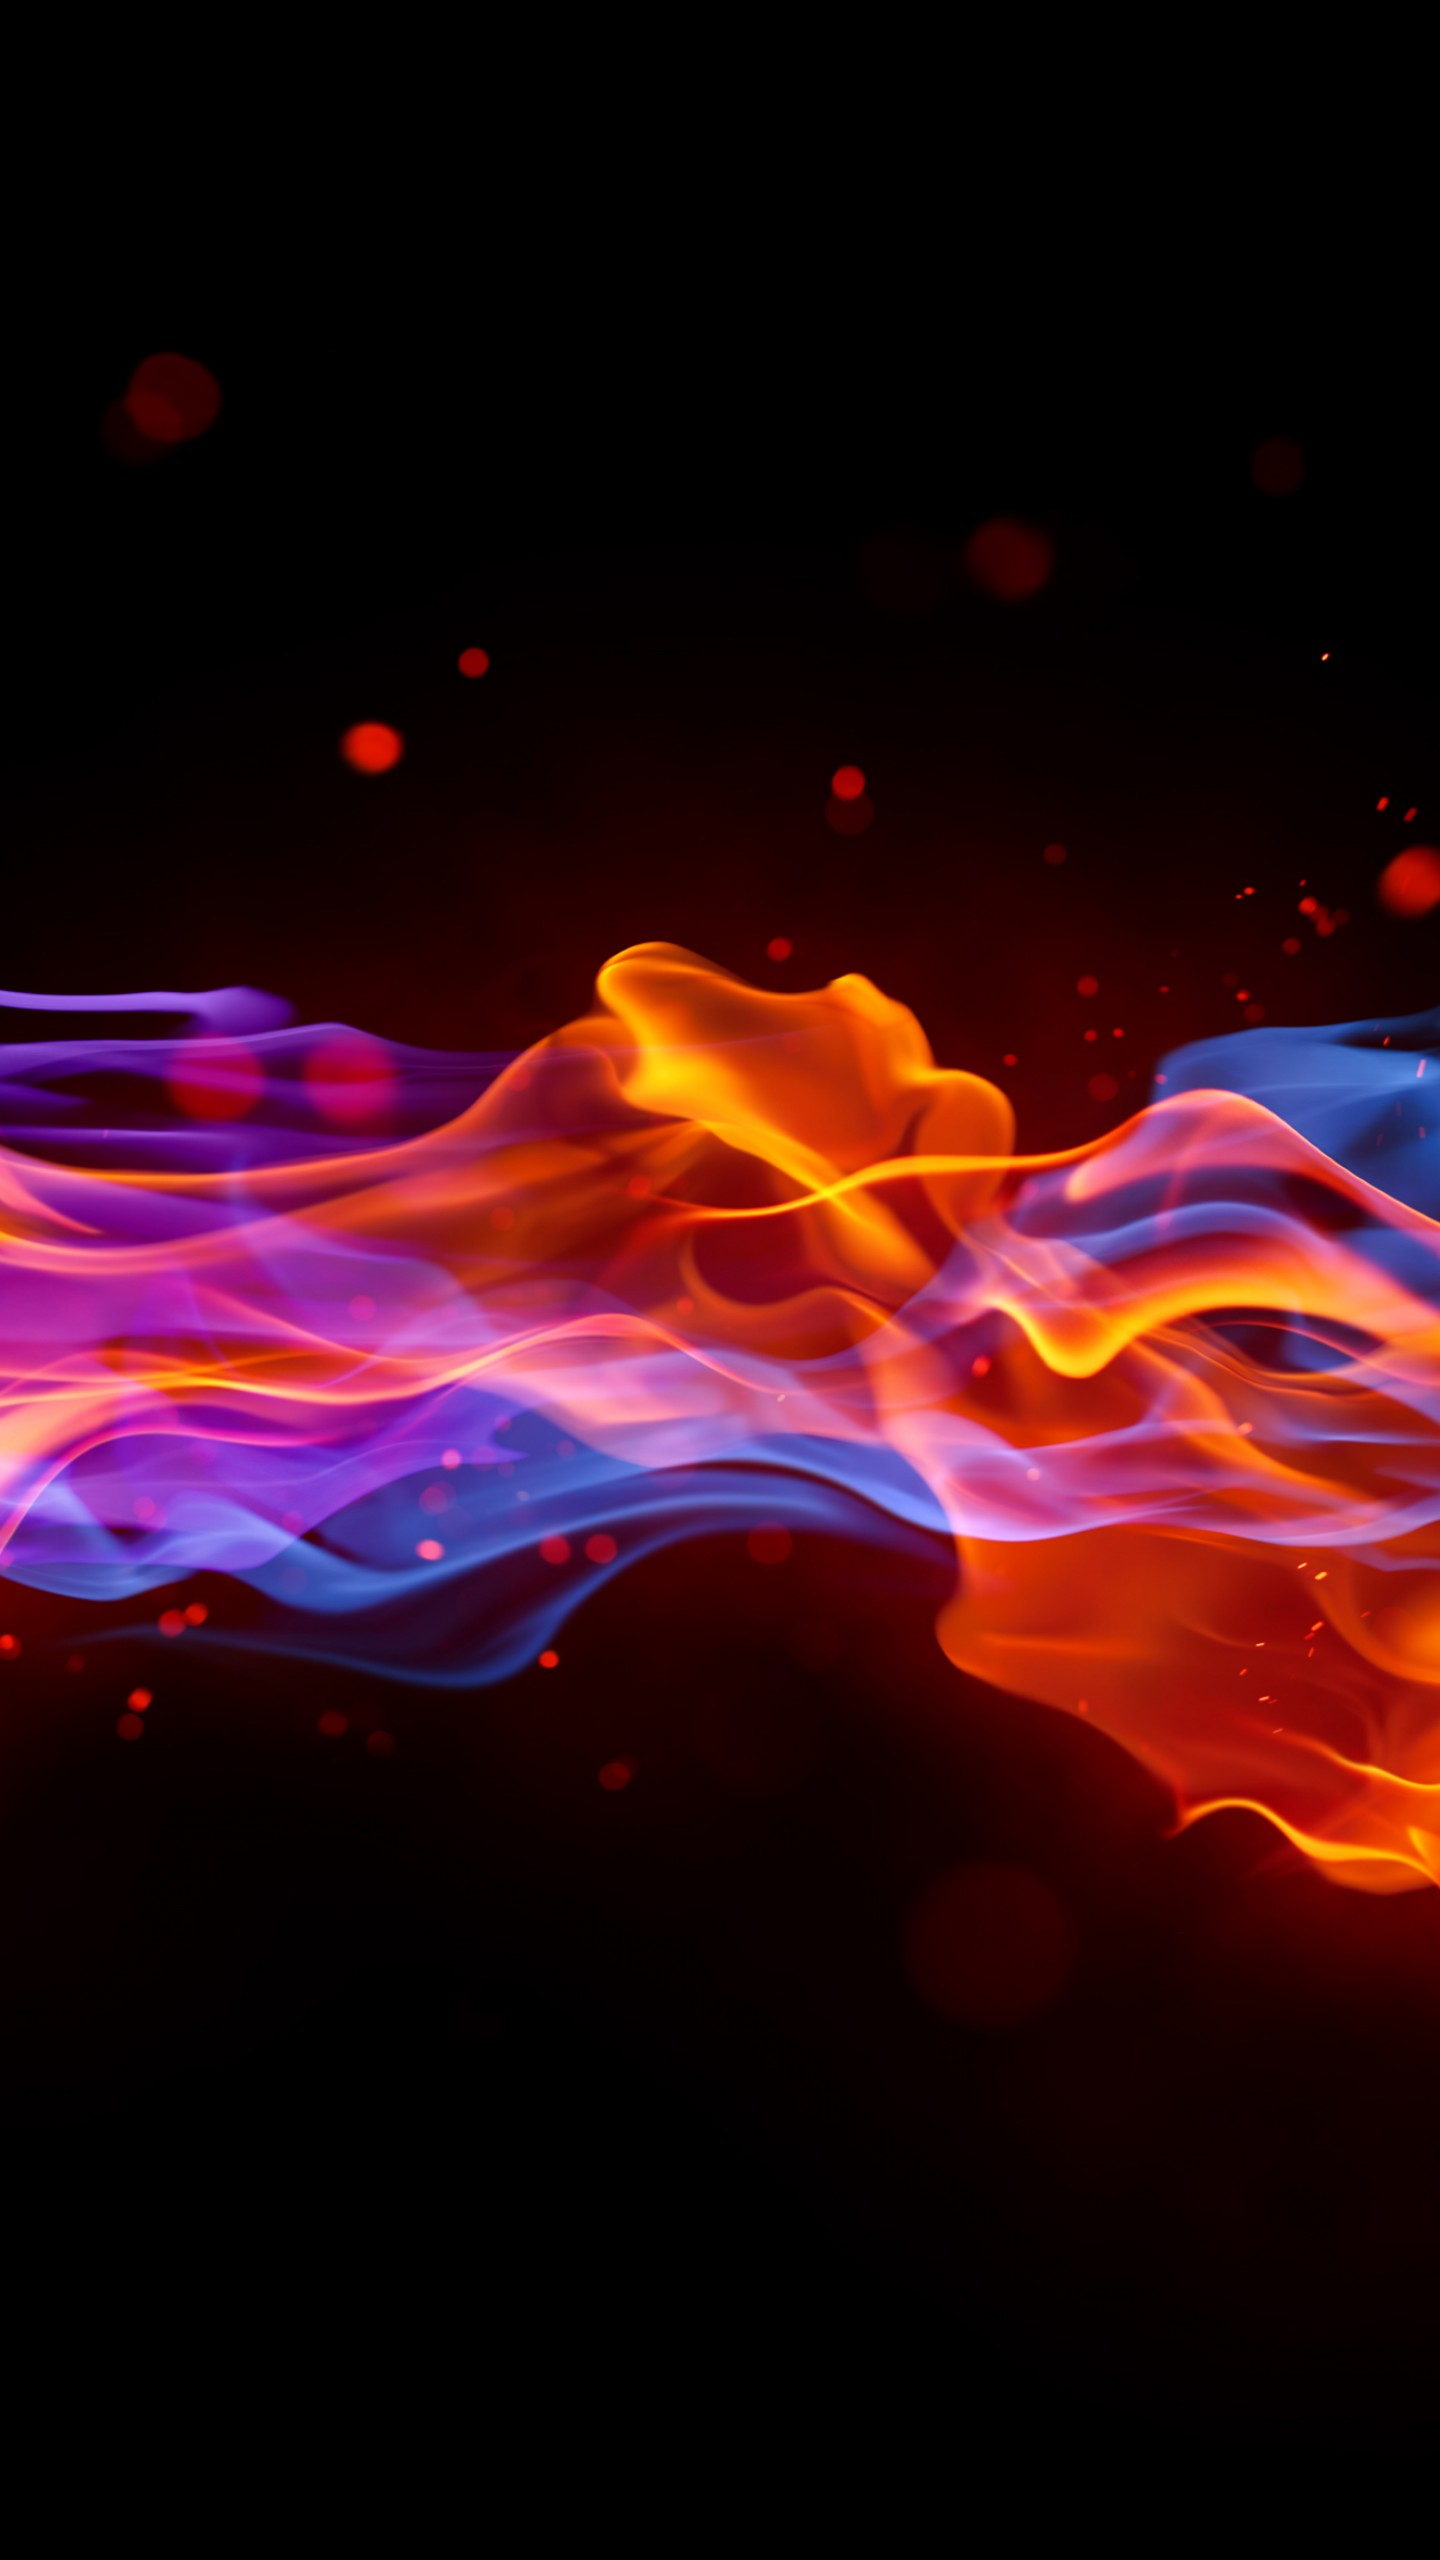 Wallpaper Fire 4k 5k Wallpaper Blue Red Violet